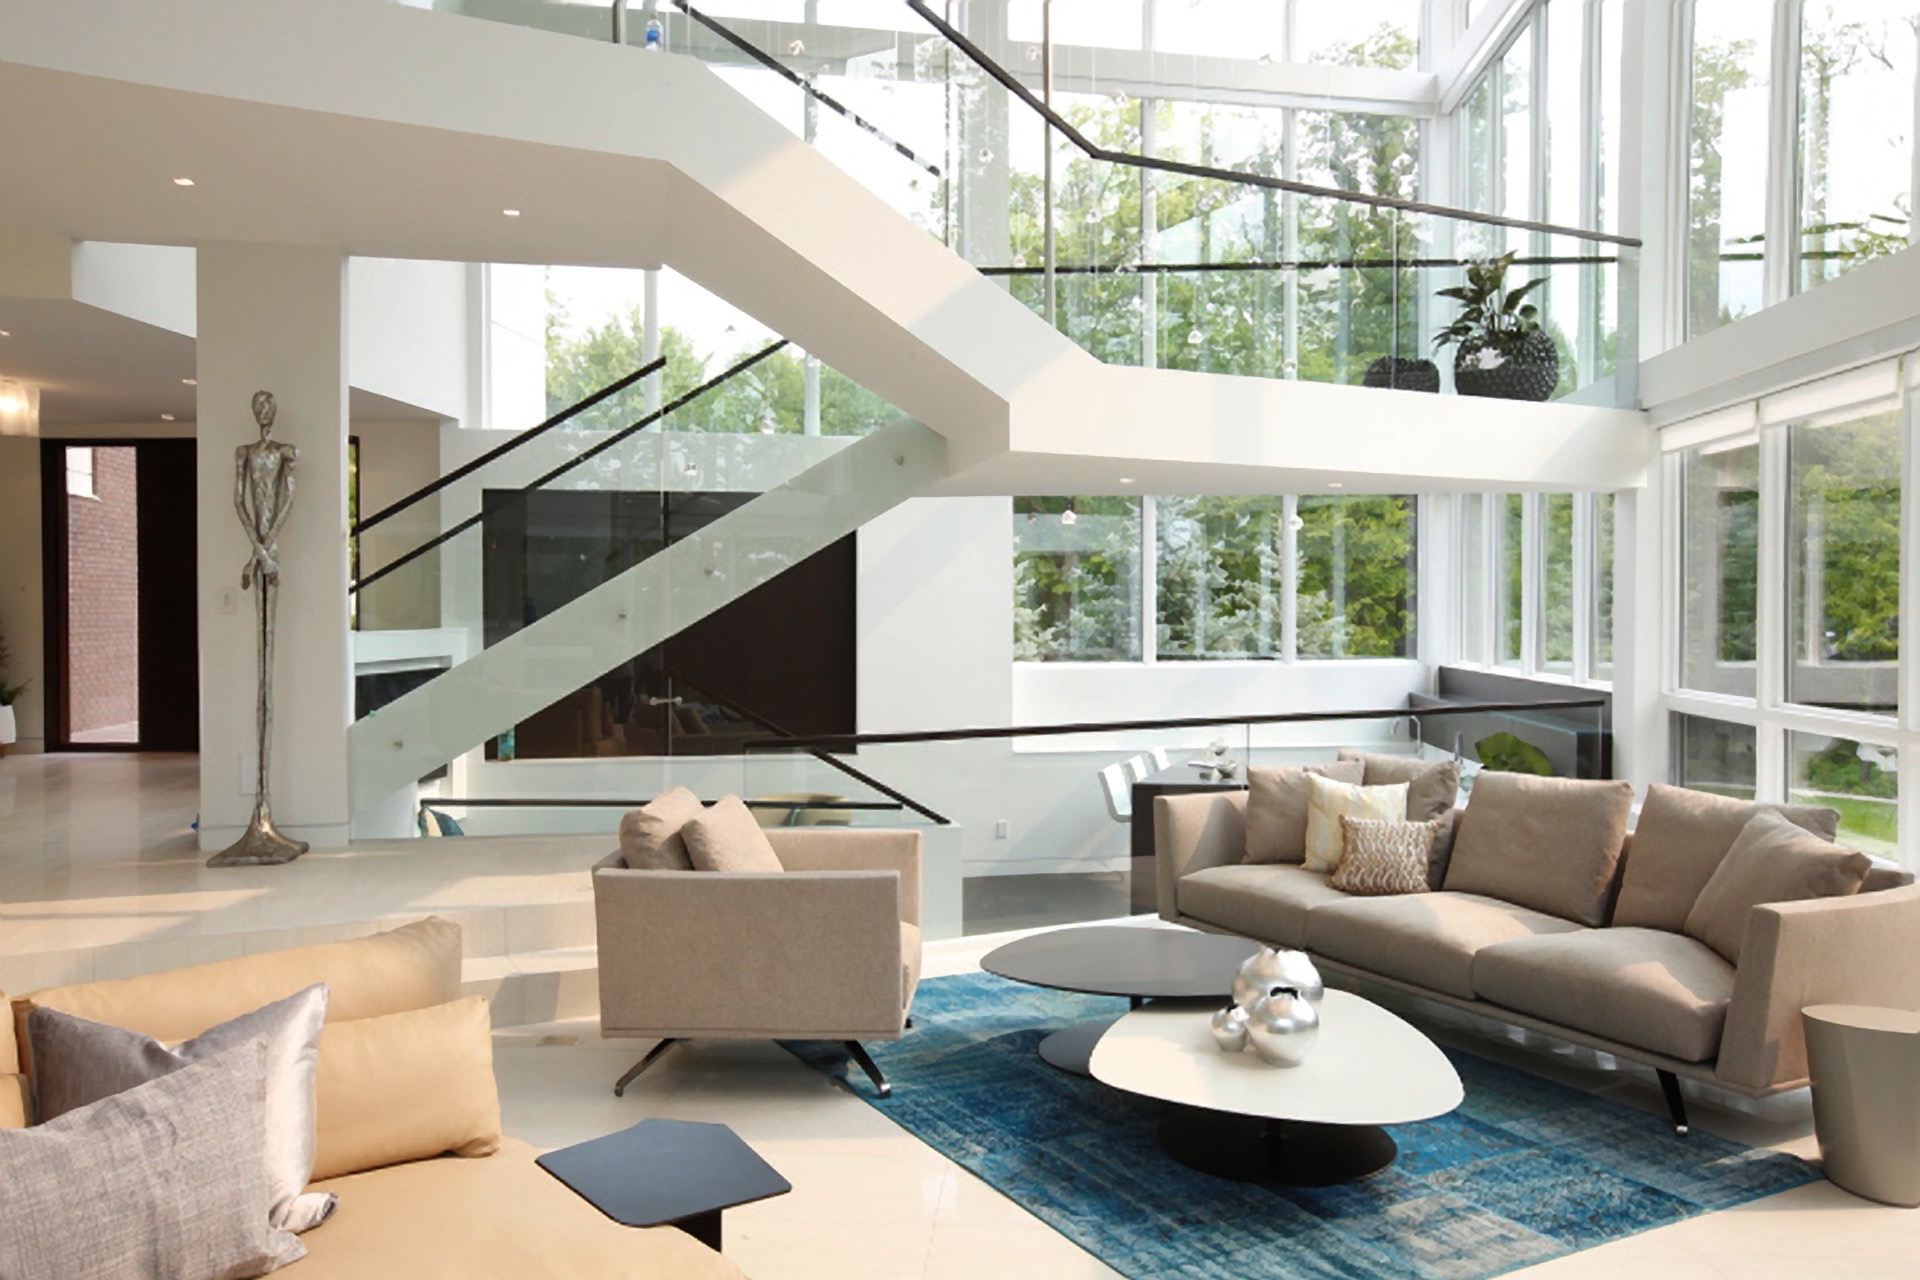 Contemporary Living Room With Large Glass Windows (Image 8 of 31)